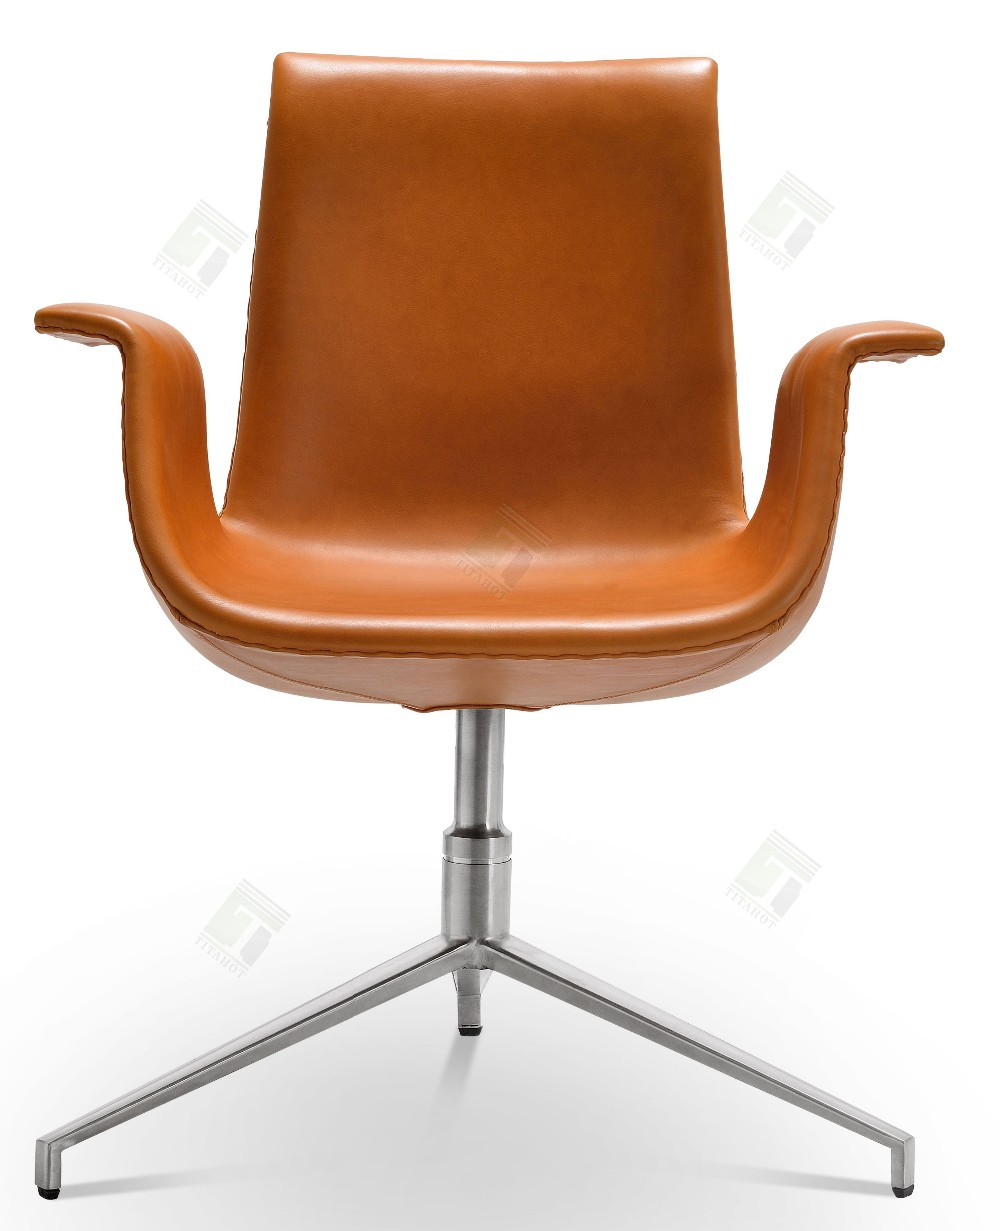 Fk6725 Fk Bucket Chairs And Office Chair 1 Jpg